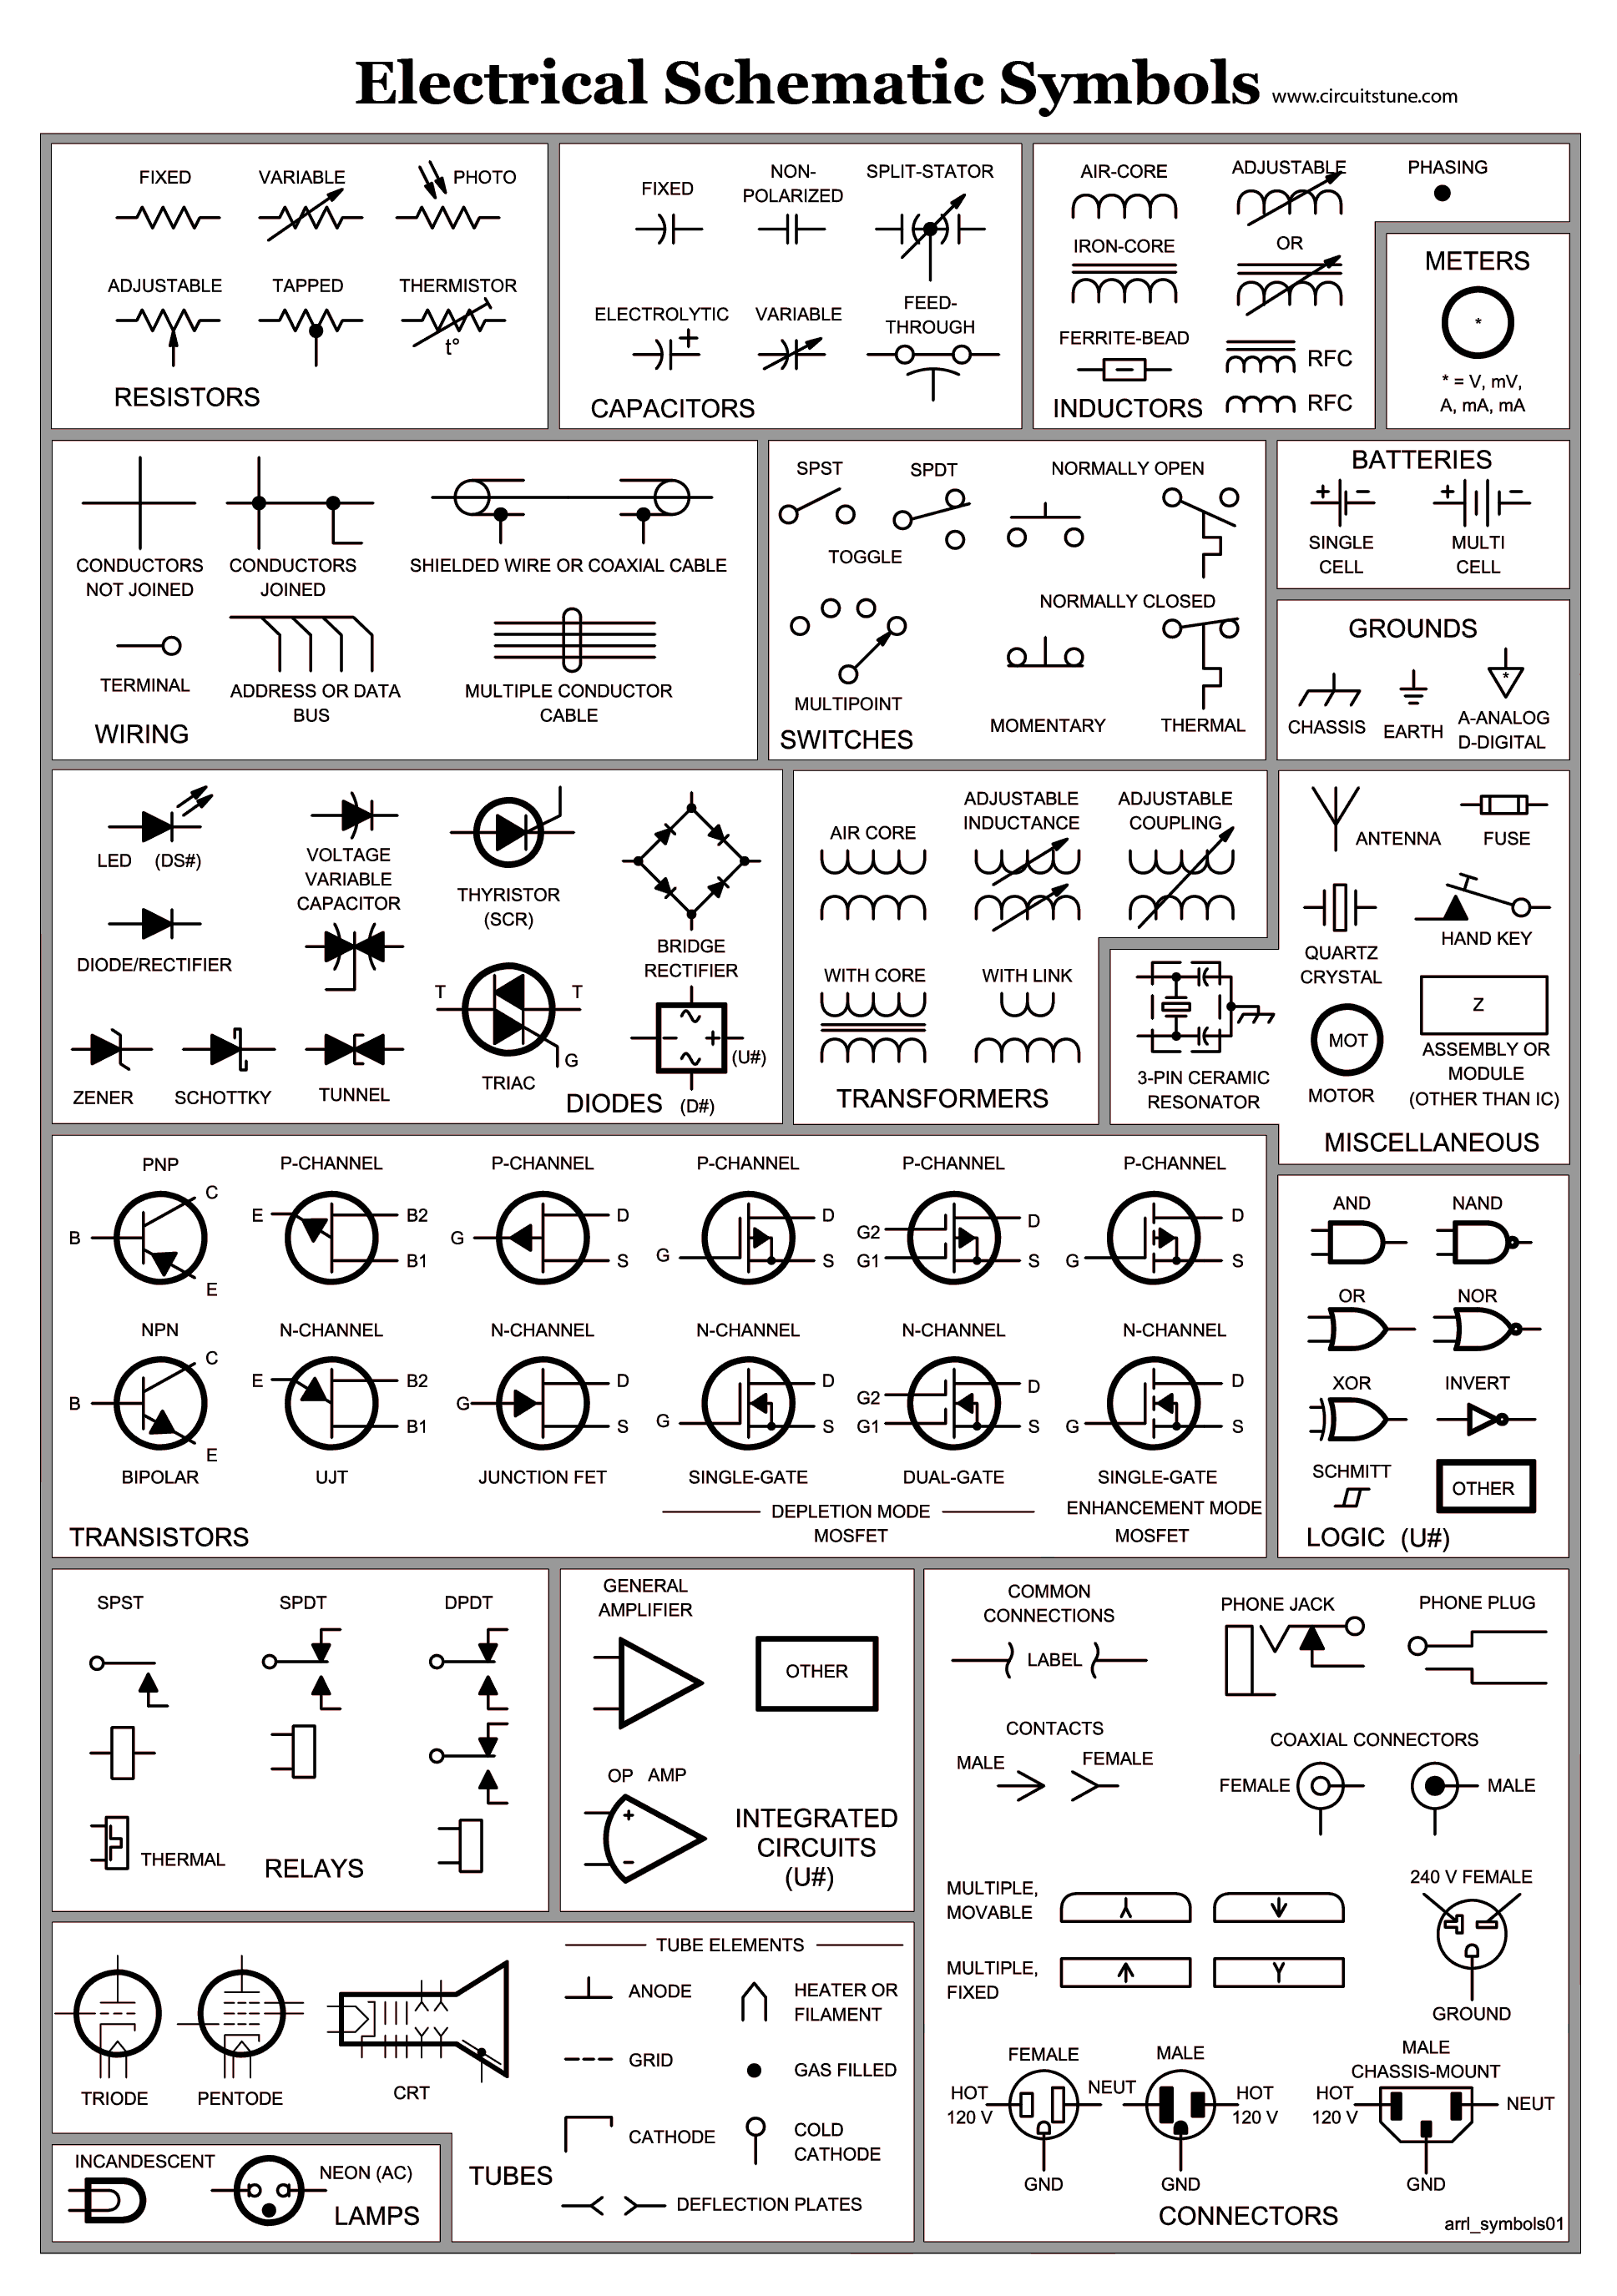 circuit diagram with symbols schema wiring diagramcircuit schematic symbols bmet wiki fandom powered by wikia circuit diagram icons circuit diagram with symbols